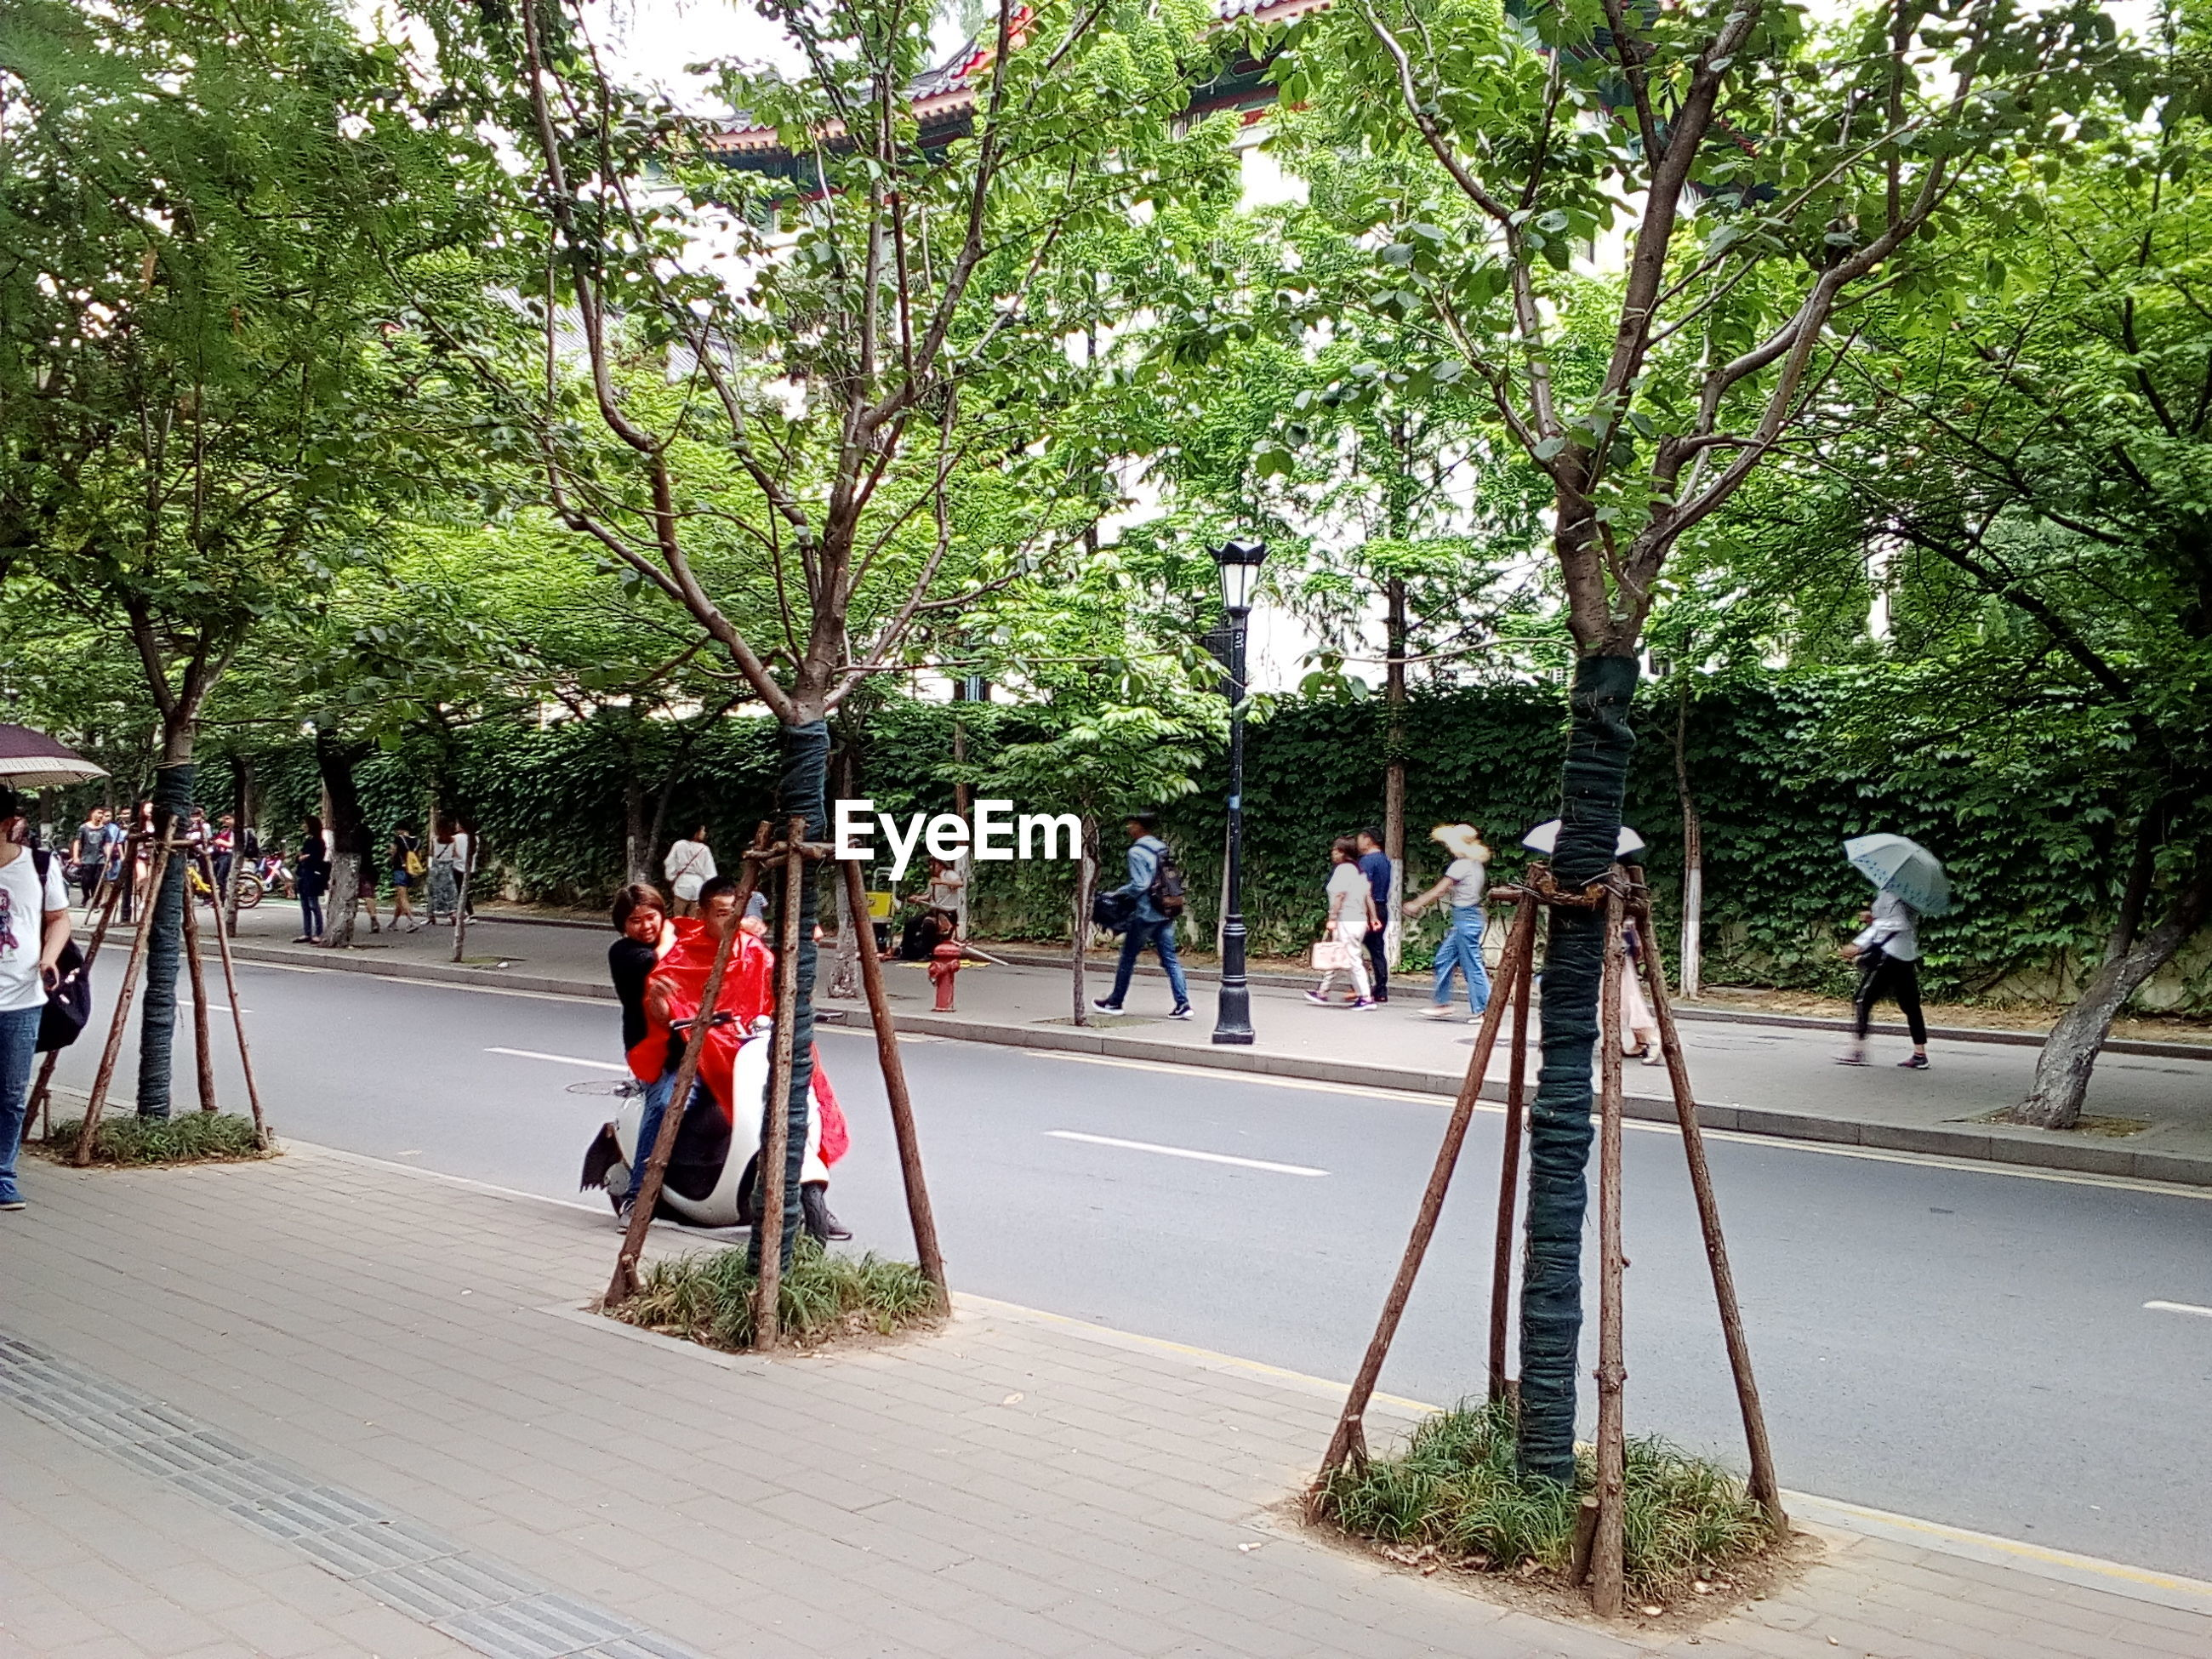 People on road against trees in city